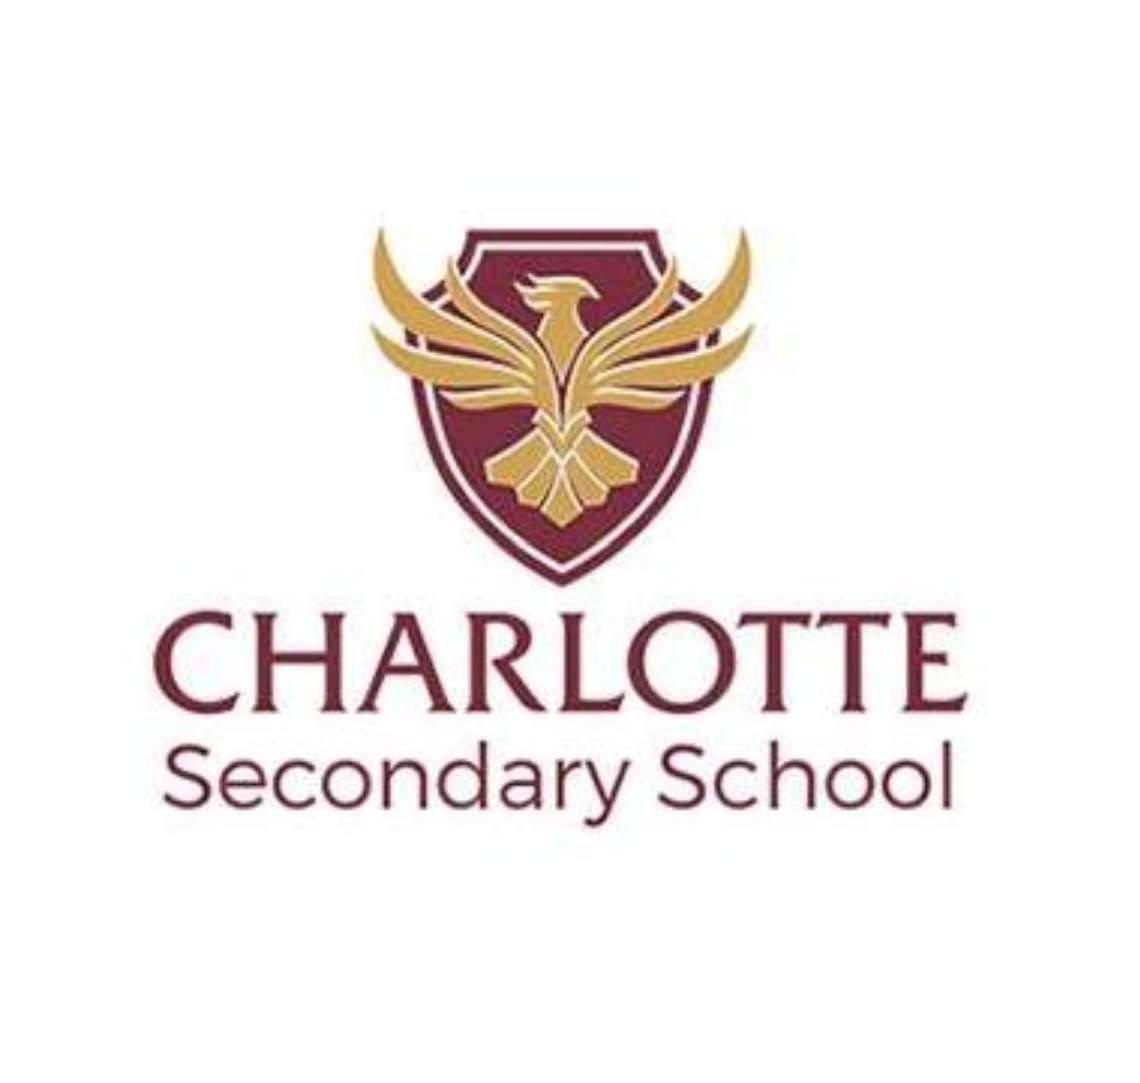 Charlotte Secondary School